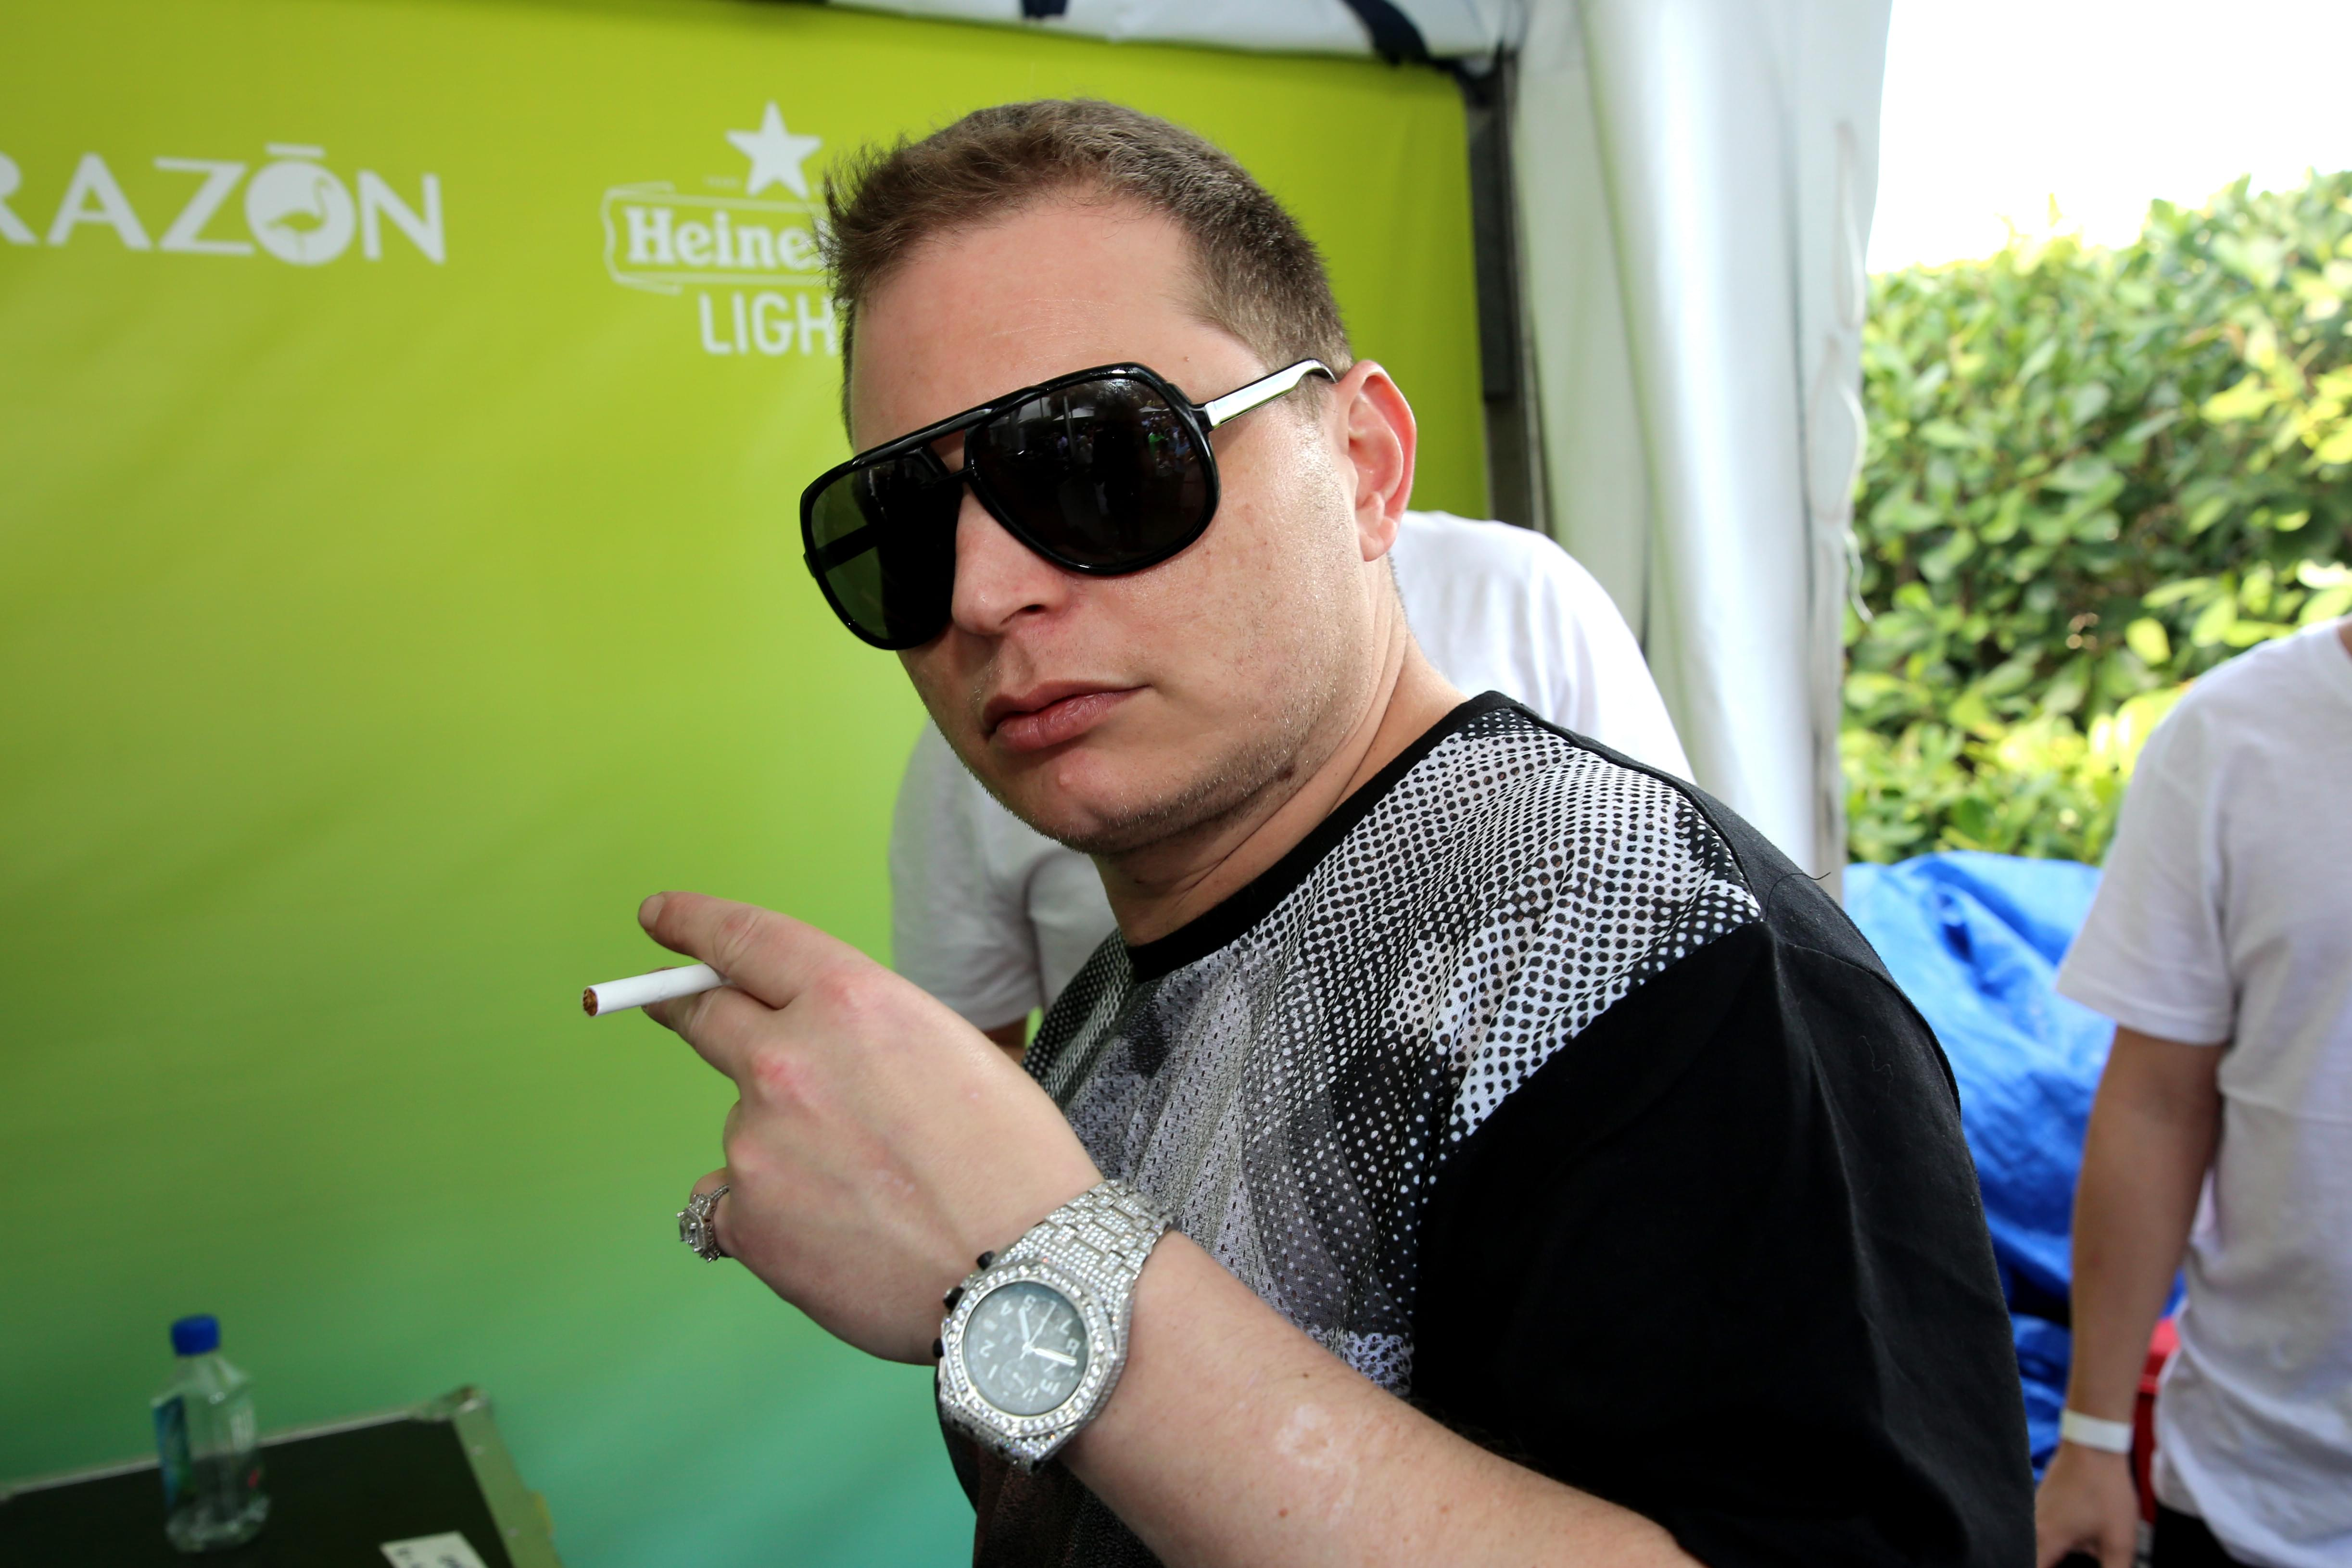 Scott Storch Reflects On Auditioning For The Roots and Working With Dr. Dre